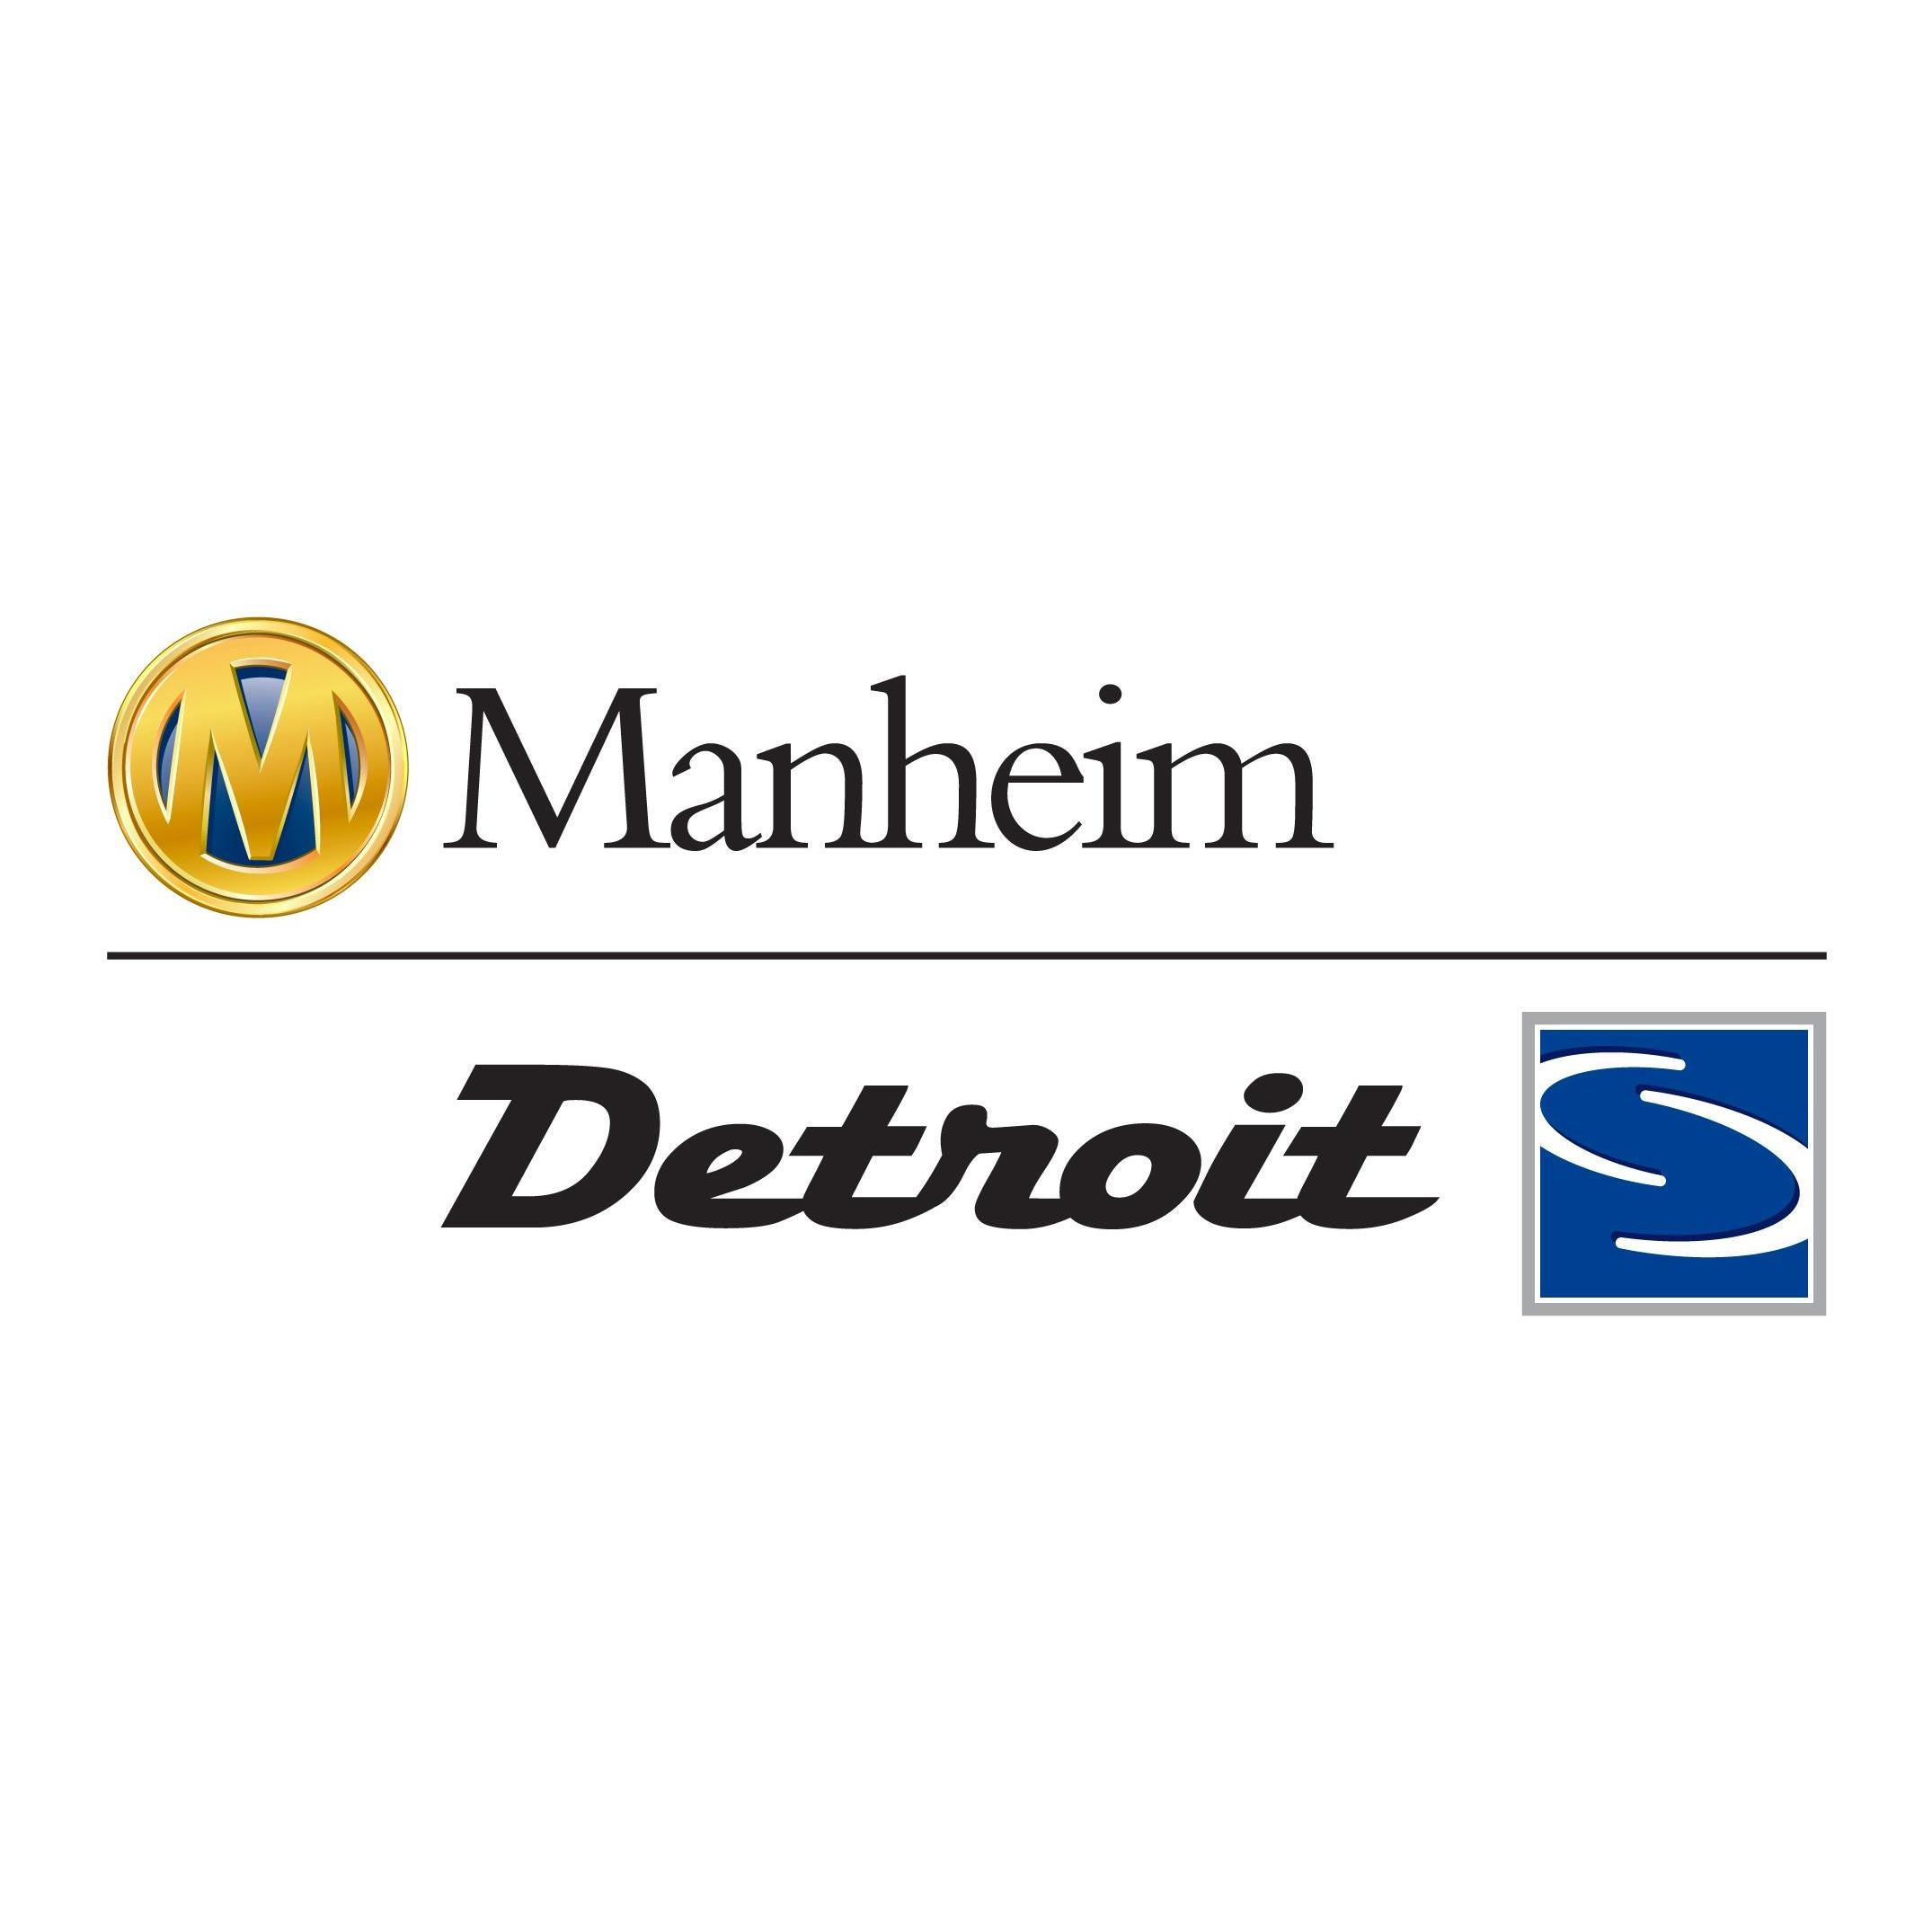 Manheim Detroit